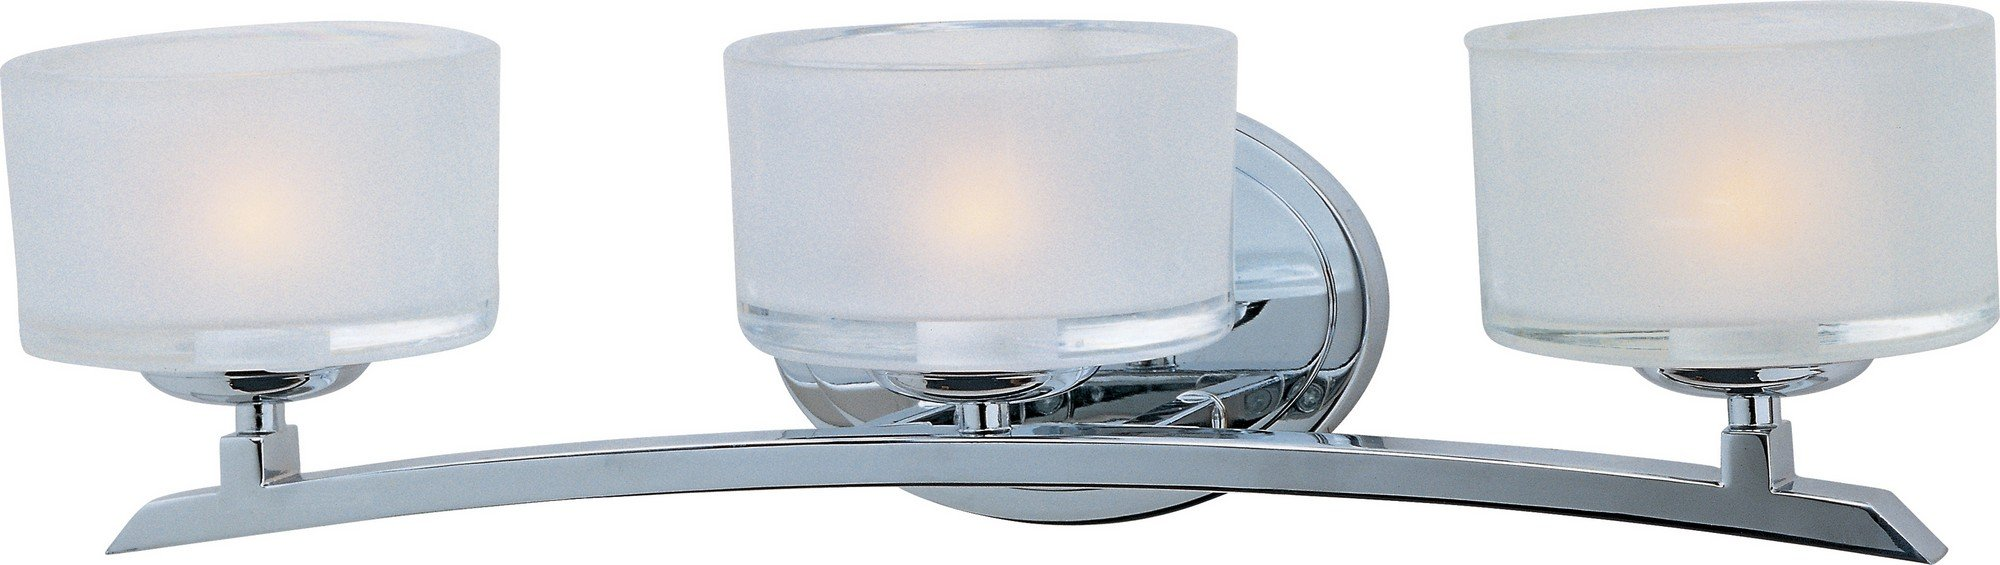 Maxim 19053FTPC Elle 3-Light Bath Vanity, Polished Chrome Finish, Frosted Glass, G9 Frost Xenon Xenon Bulb , 100W Max., Dry Safety Rating, 2700K Color Temp, Standard Dimmable, Glass Shade Material, 1150 Rated Lumens